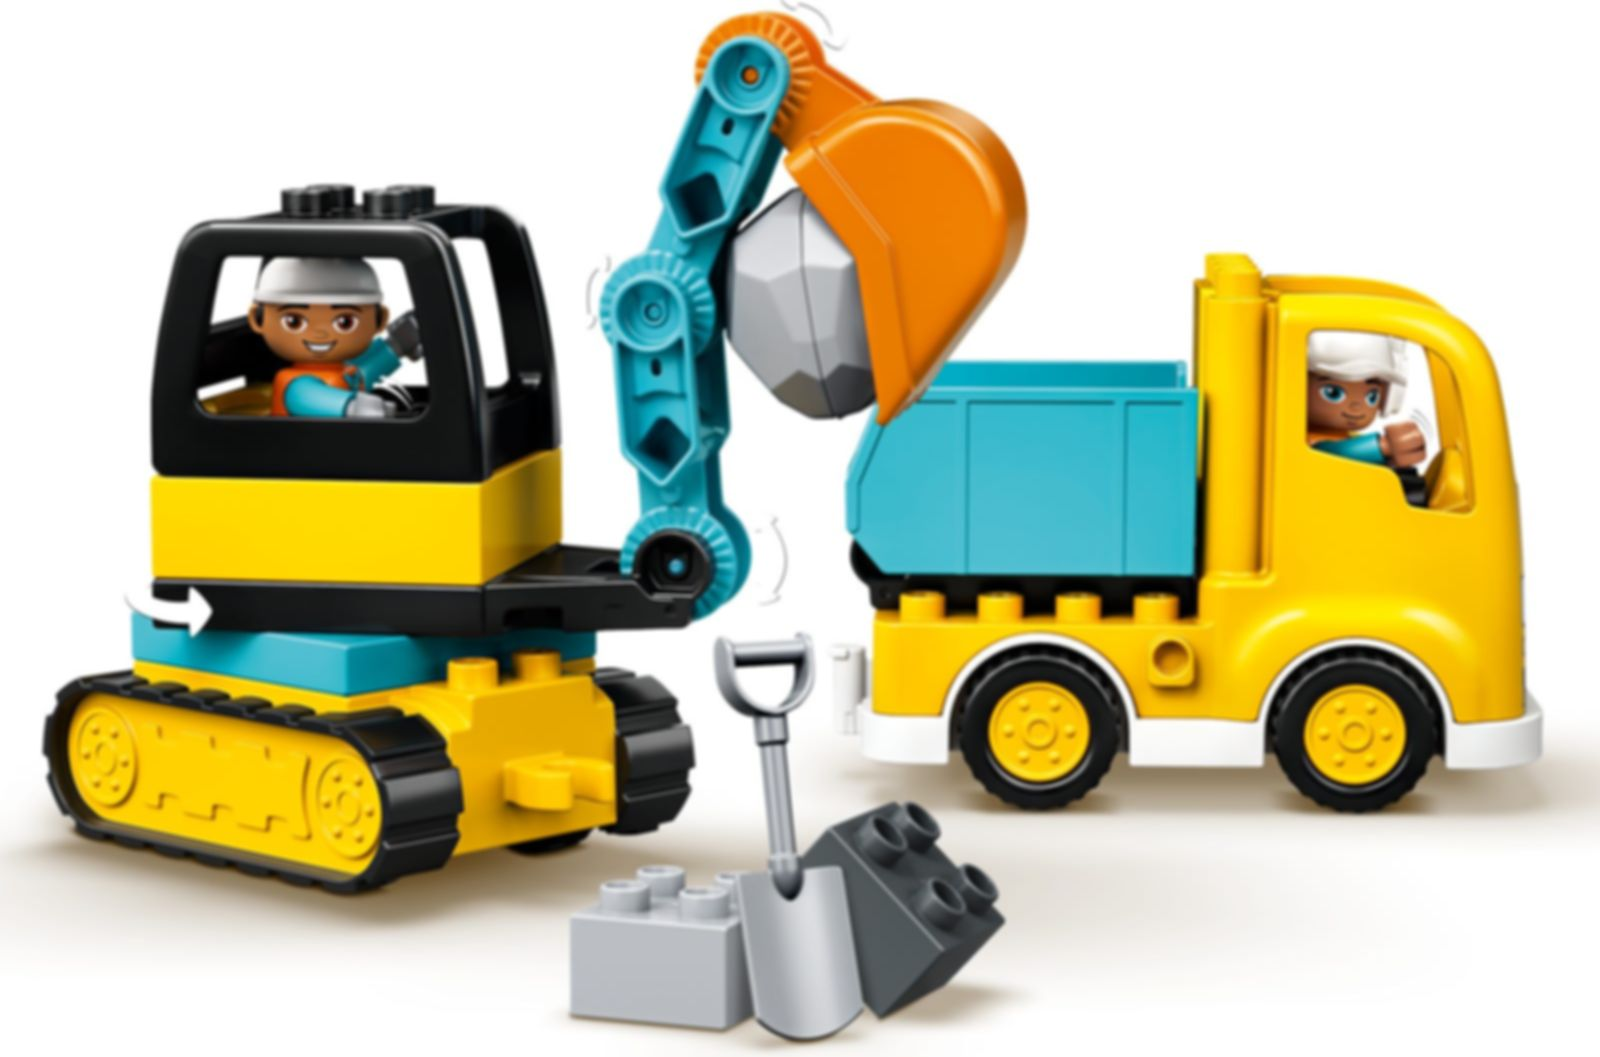 Truck & Tracked Excavator components